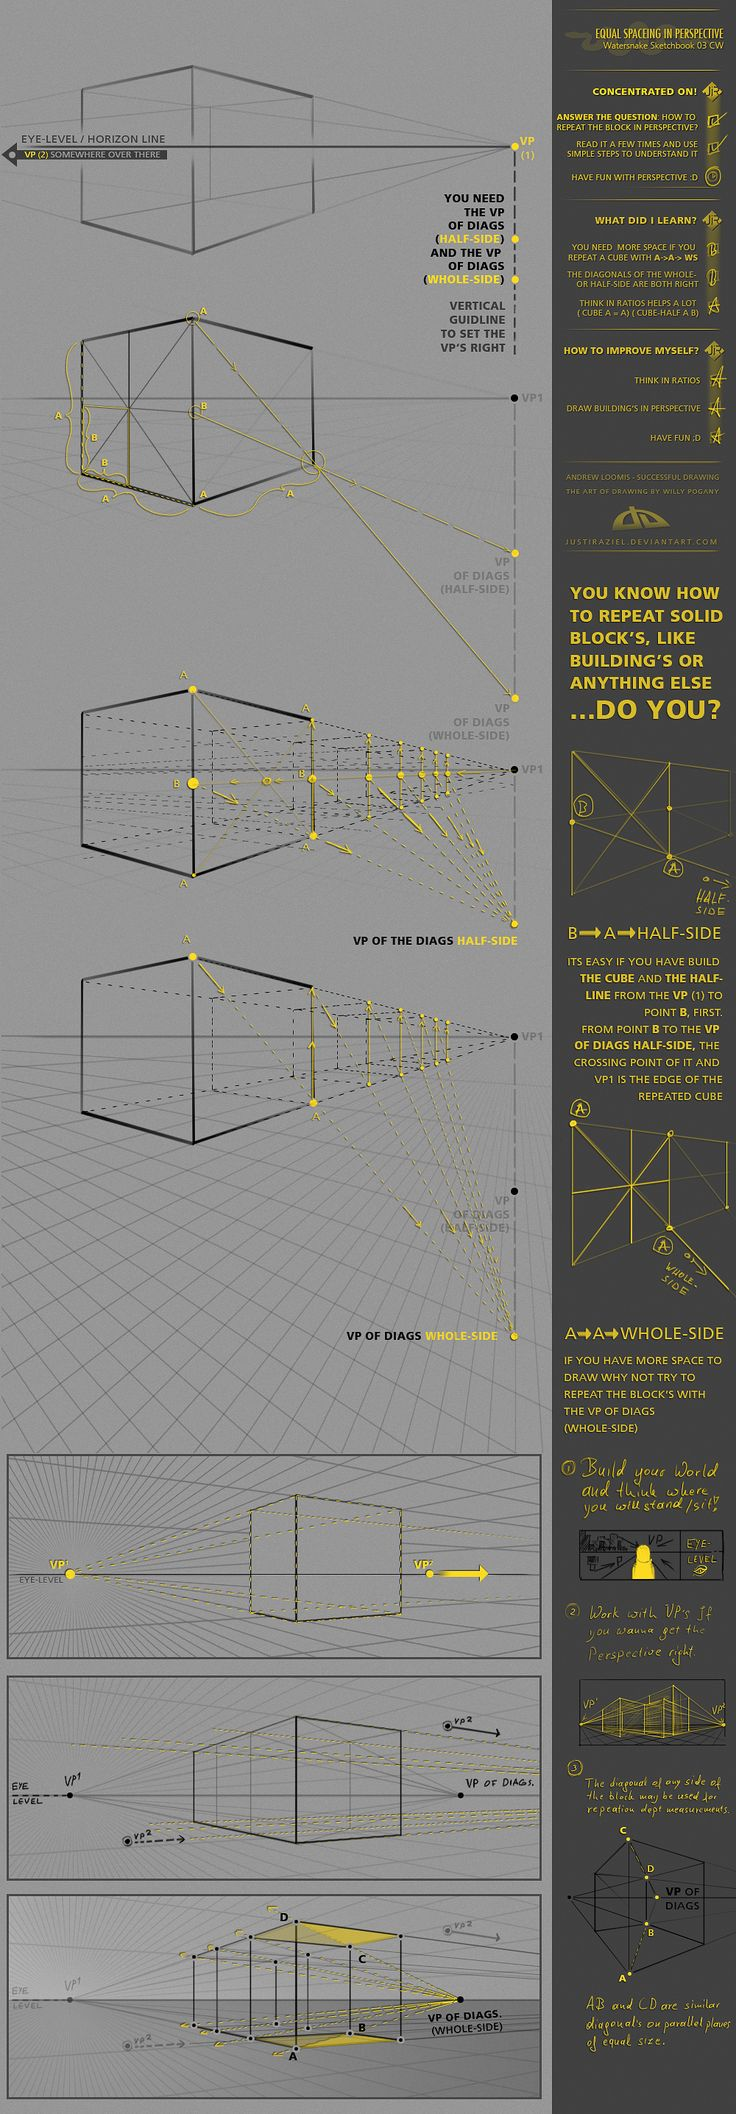 4 point perspective drawing tutorial